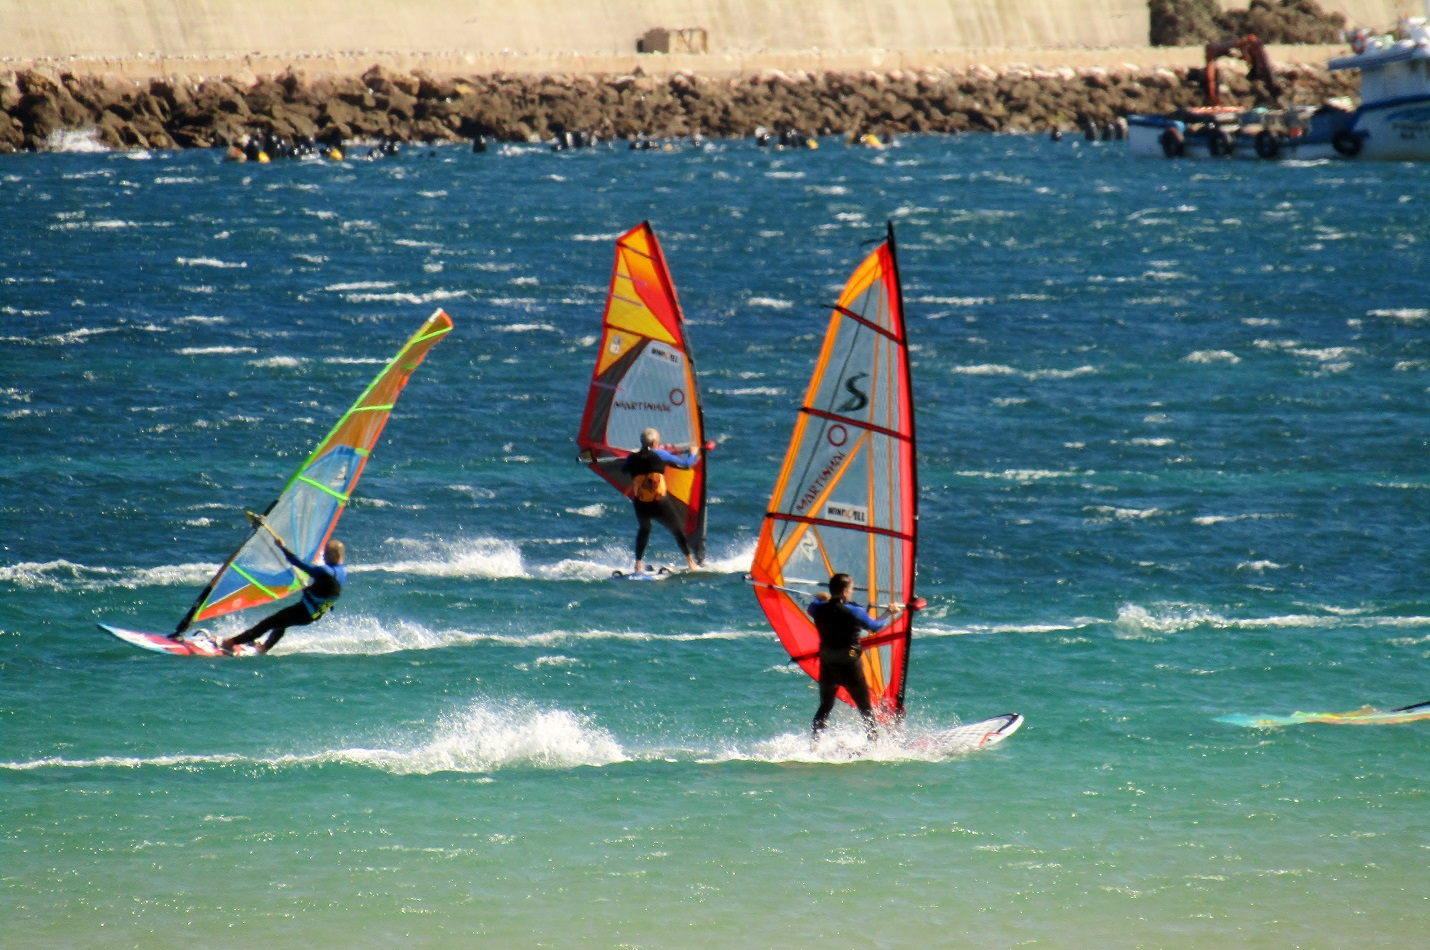 3 windsurfers on the ocean with orange sails